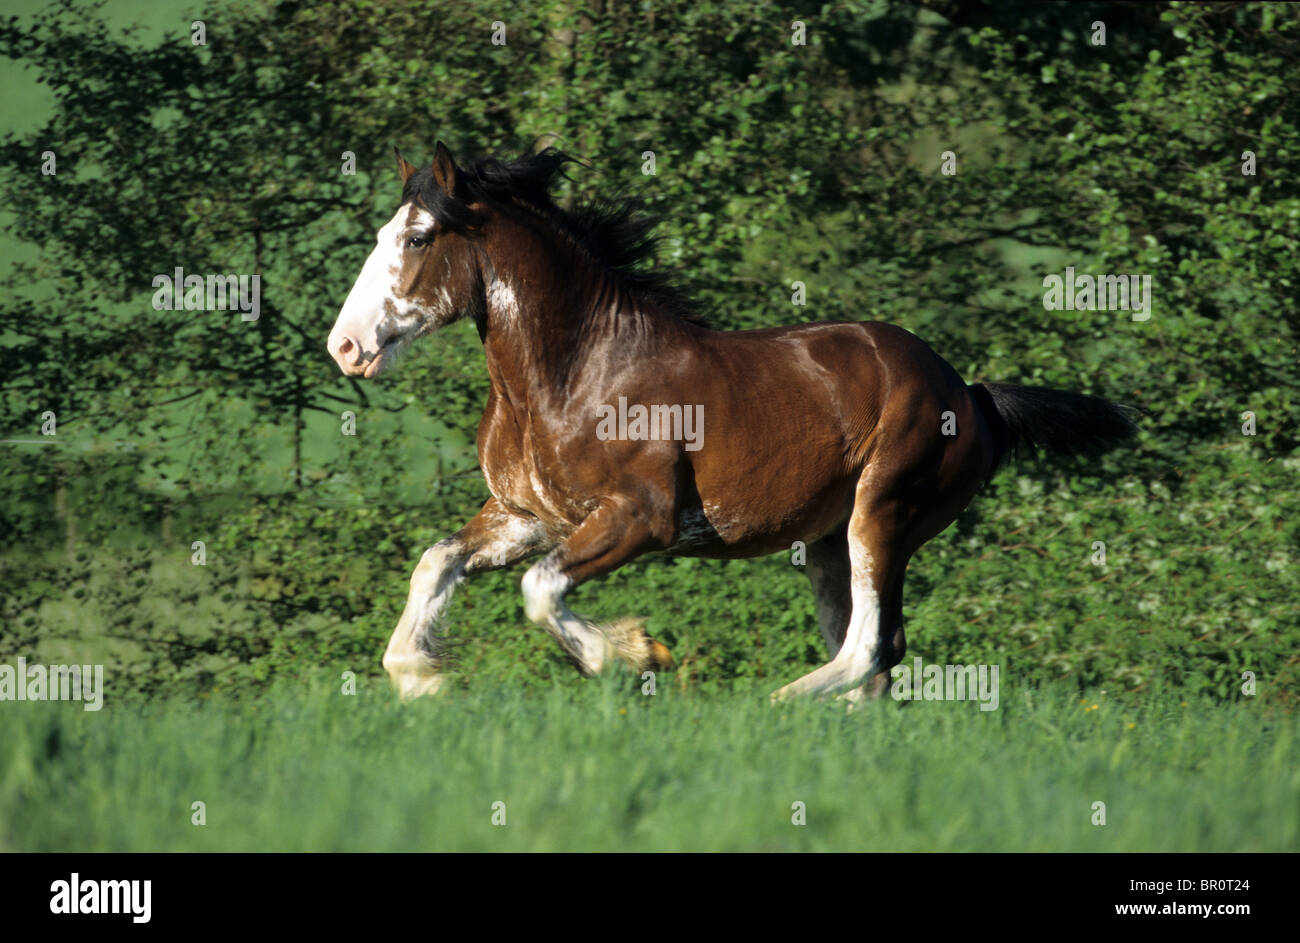 Shire Horse (Equus ferus caballus). A gelding at a gallop on a meadow. - Stock Image